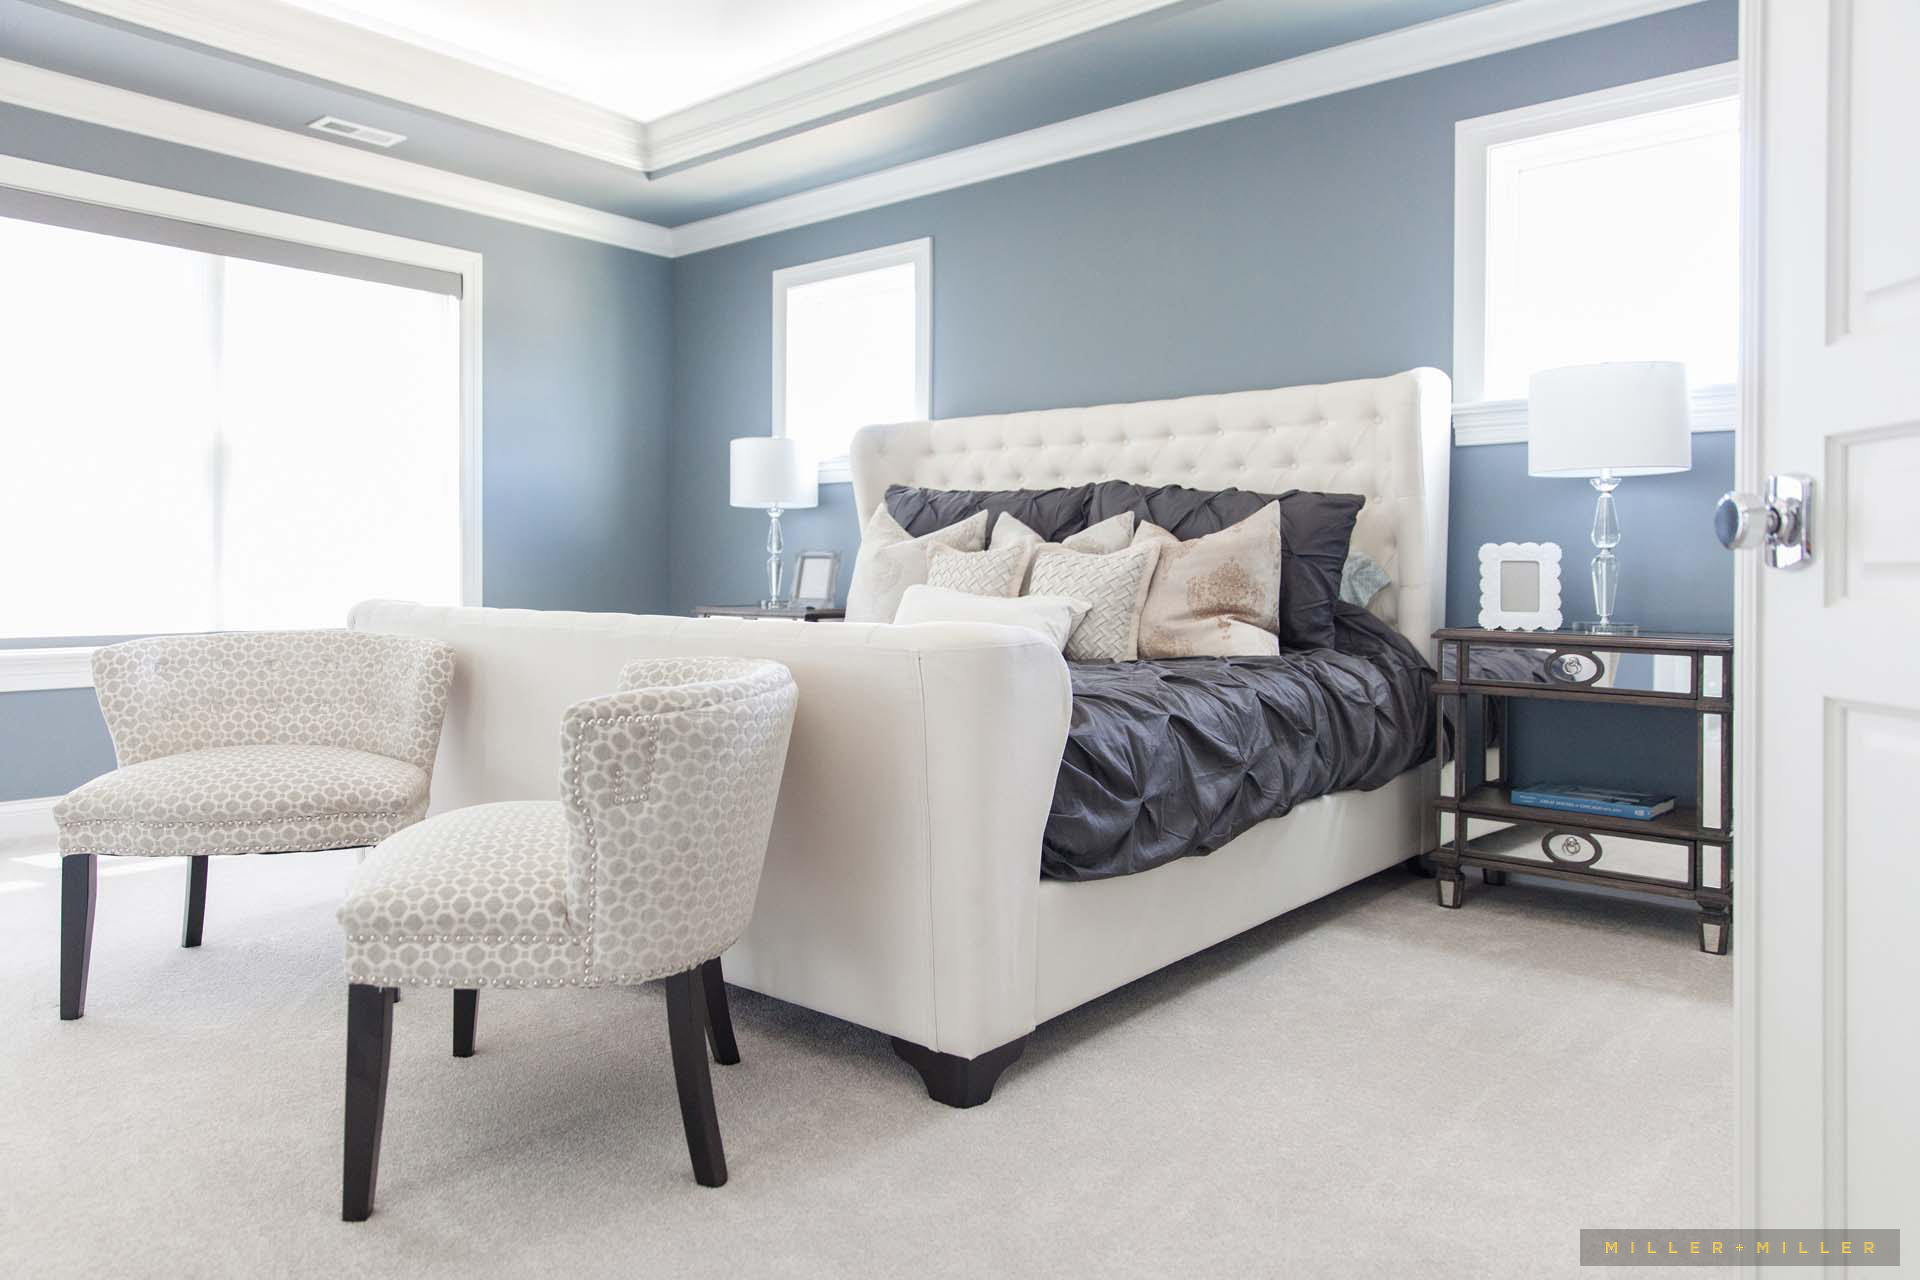 wingback-button-tufted-headboard-master-bed-blue-walls